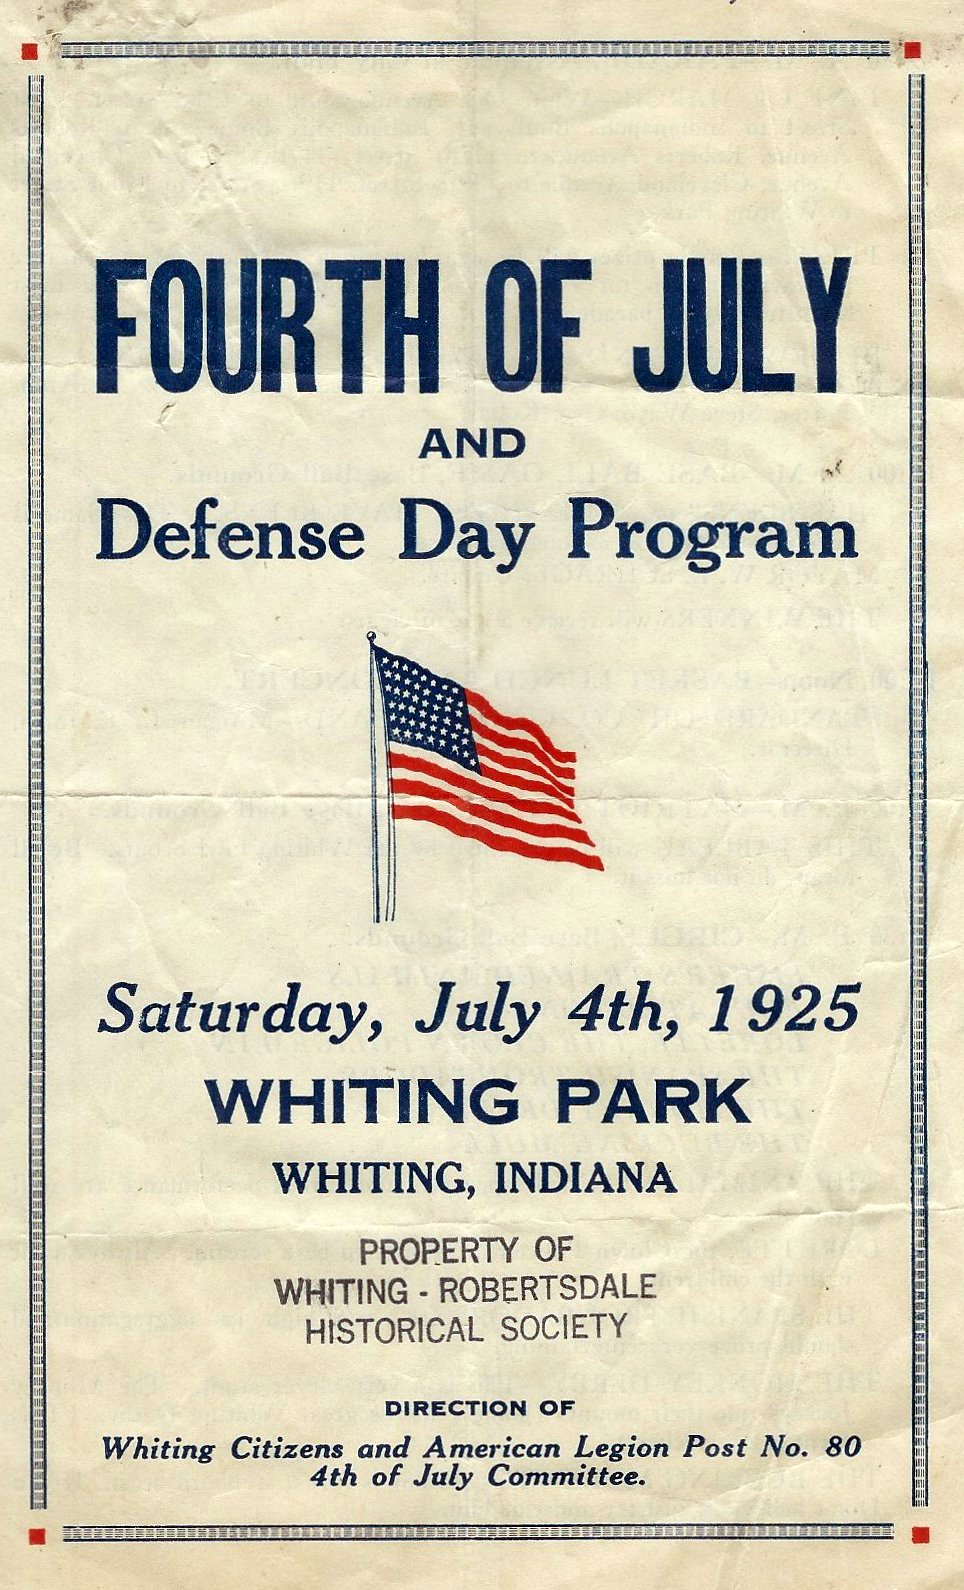 4th of July 1925 Program.jpg